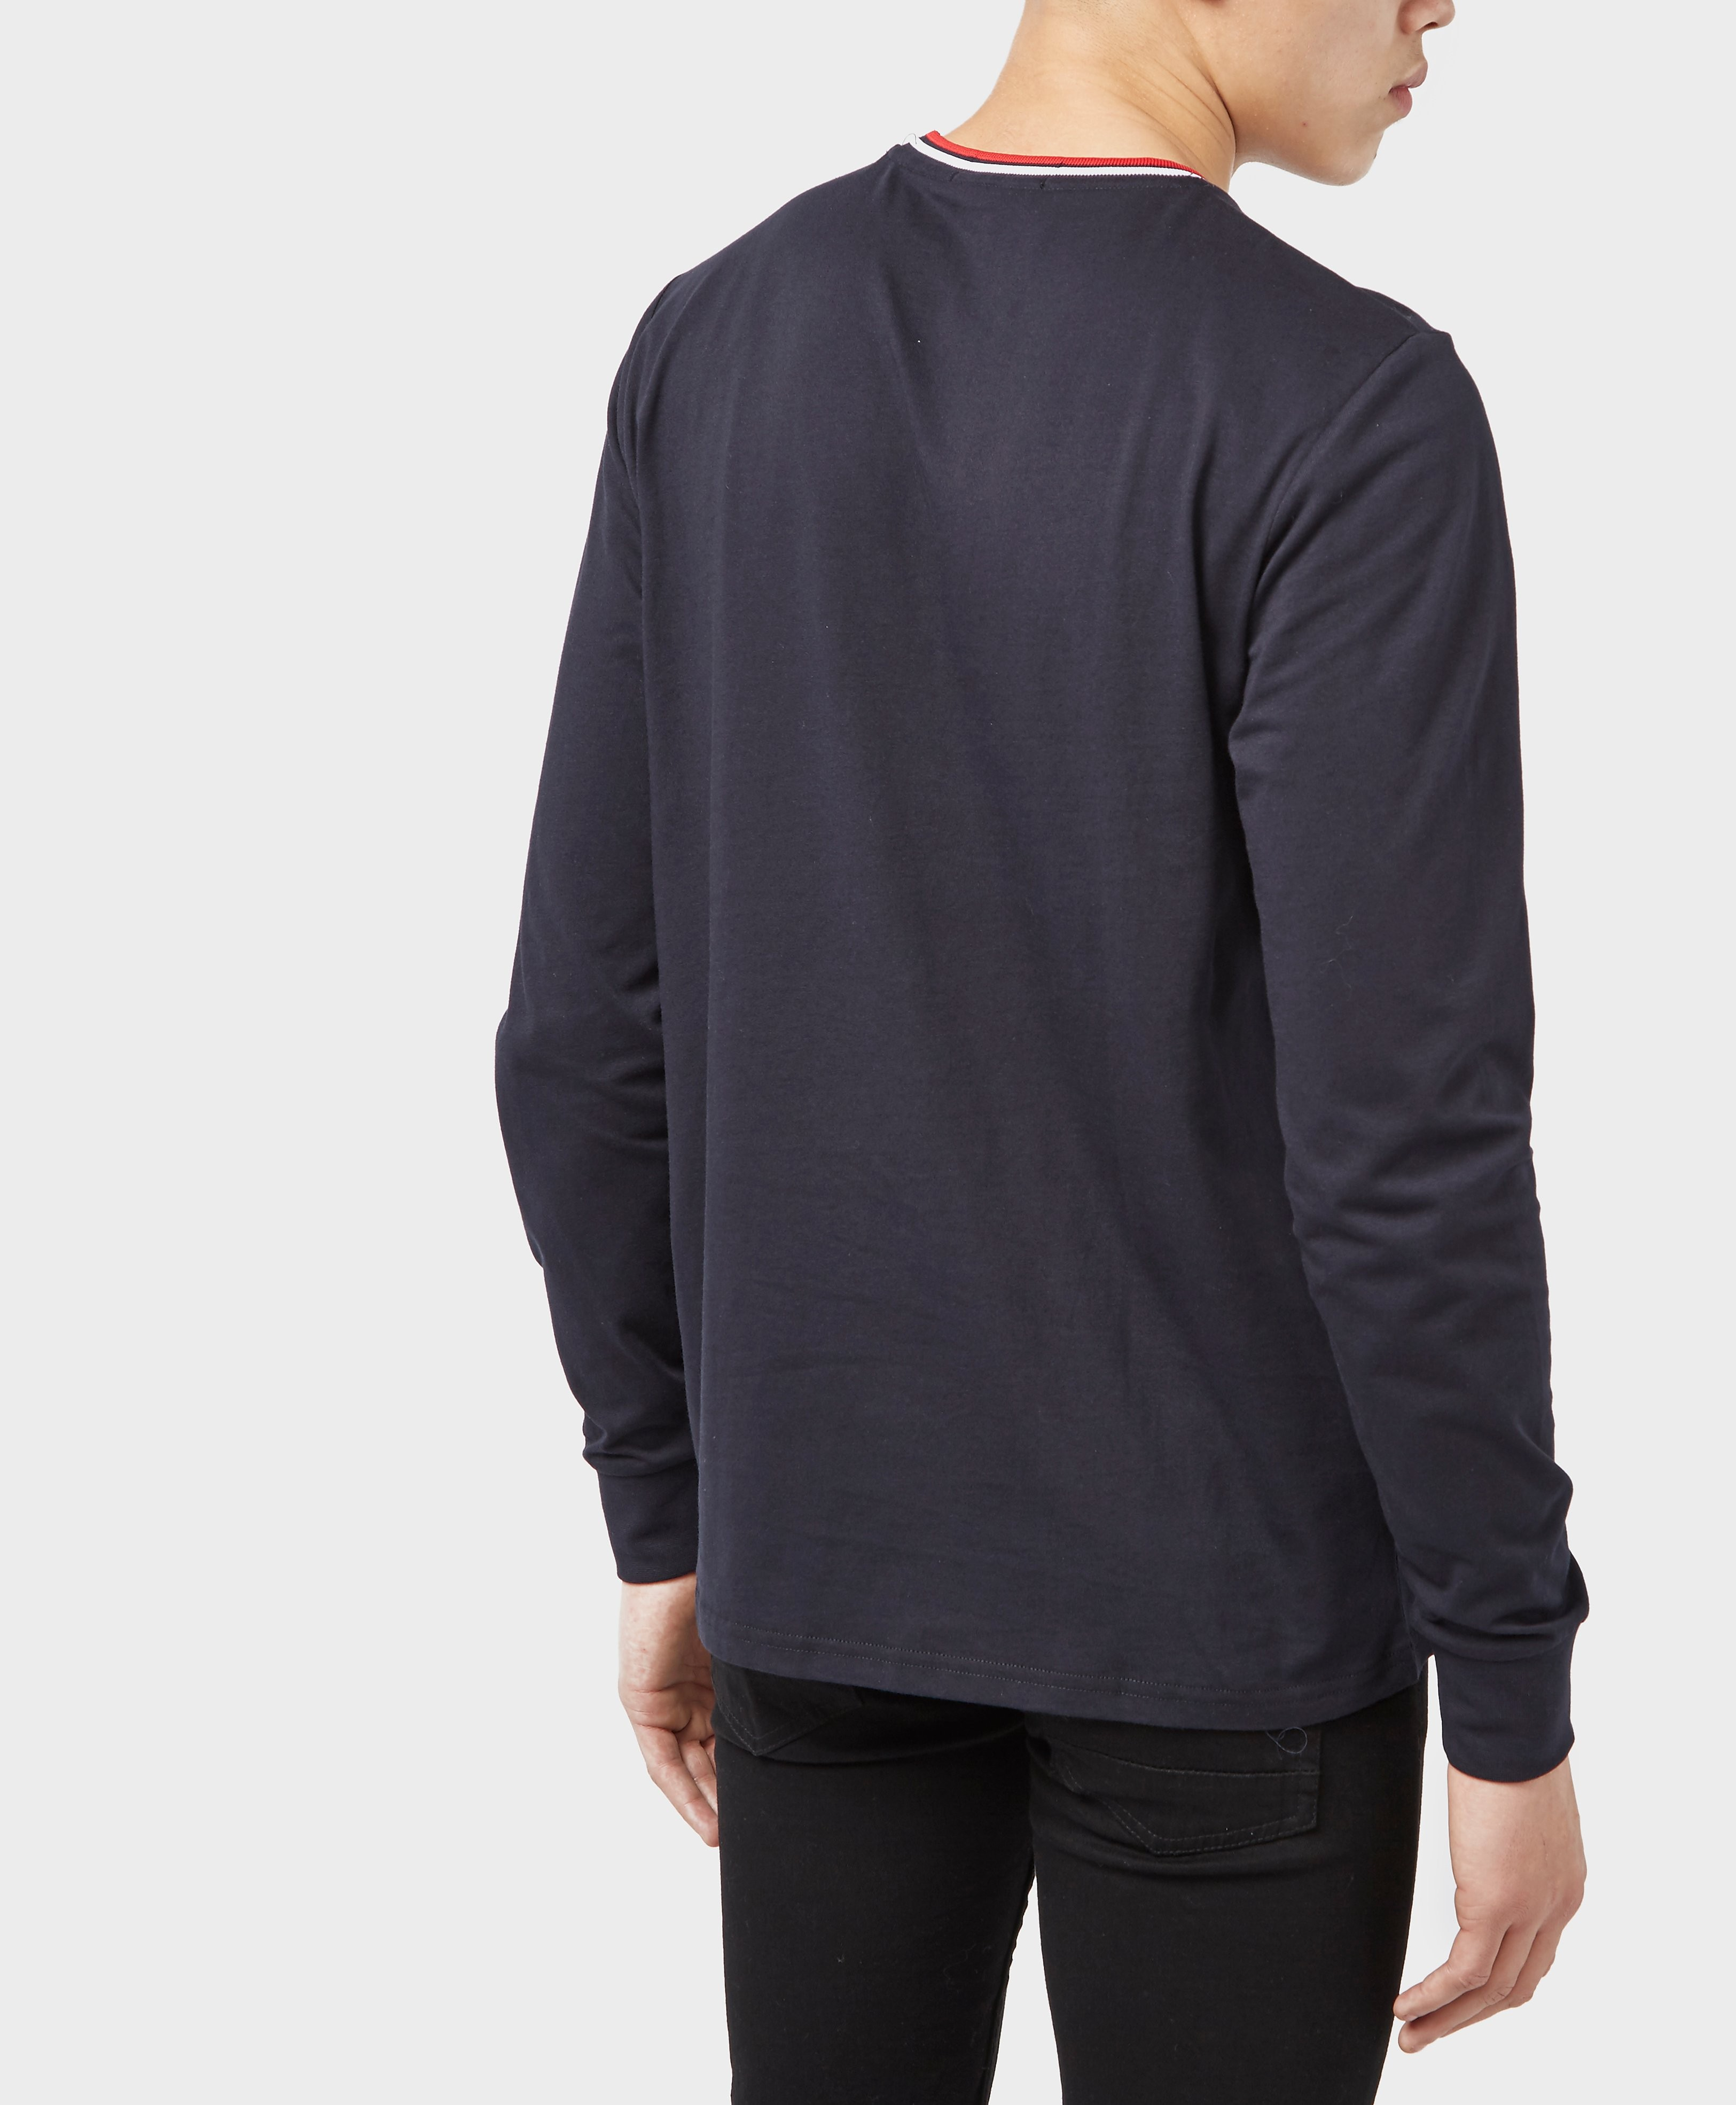 Fred Perry Tipped Long Sleeve T-Shirt